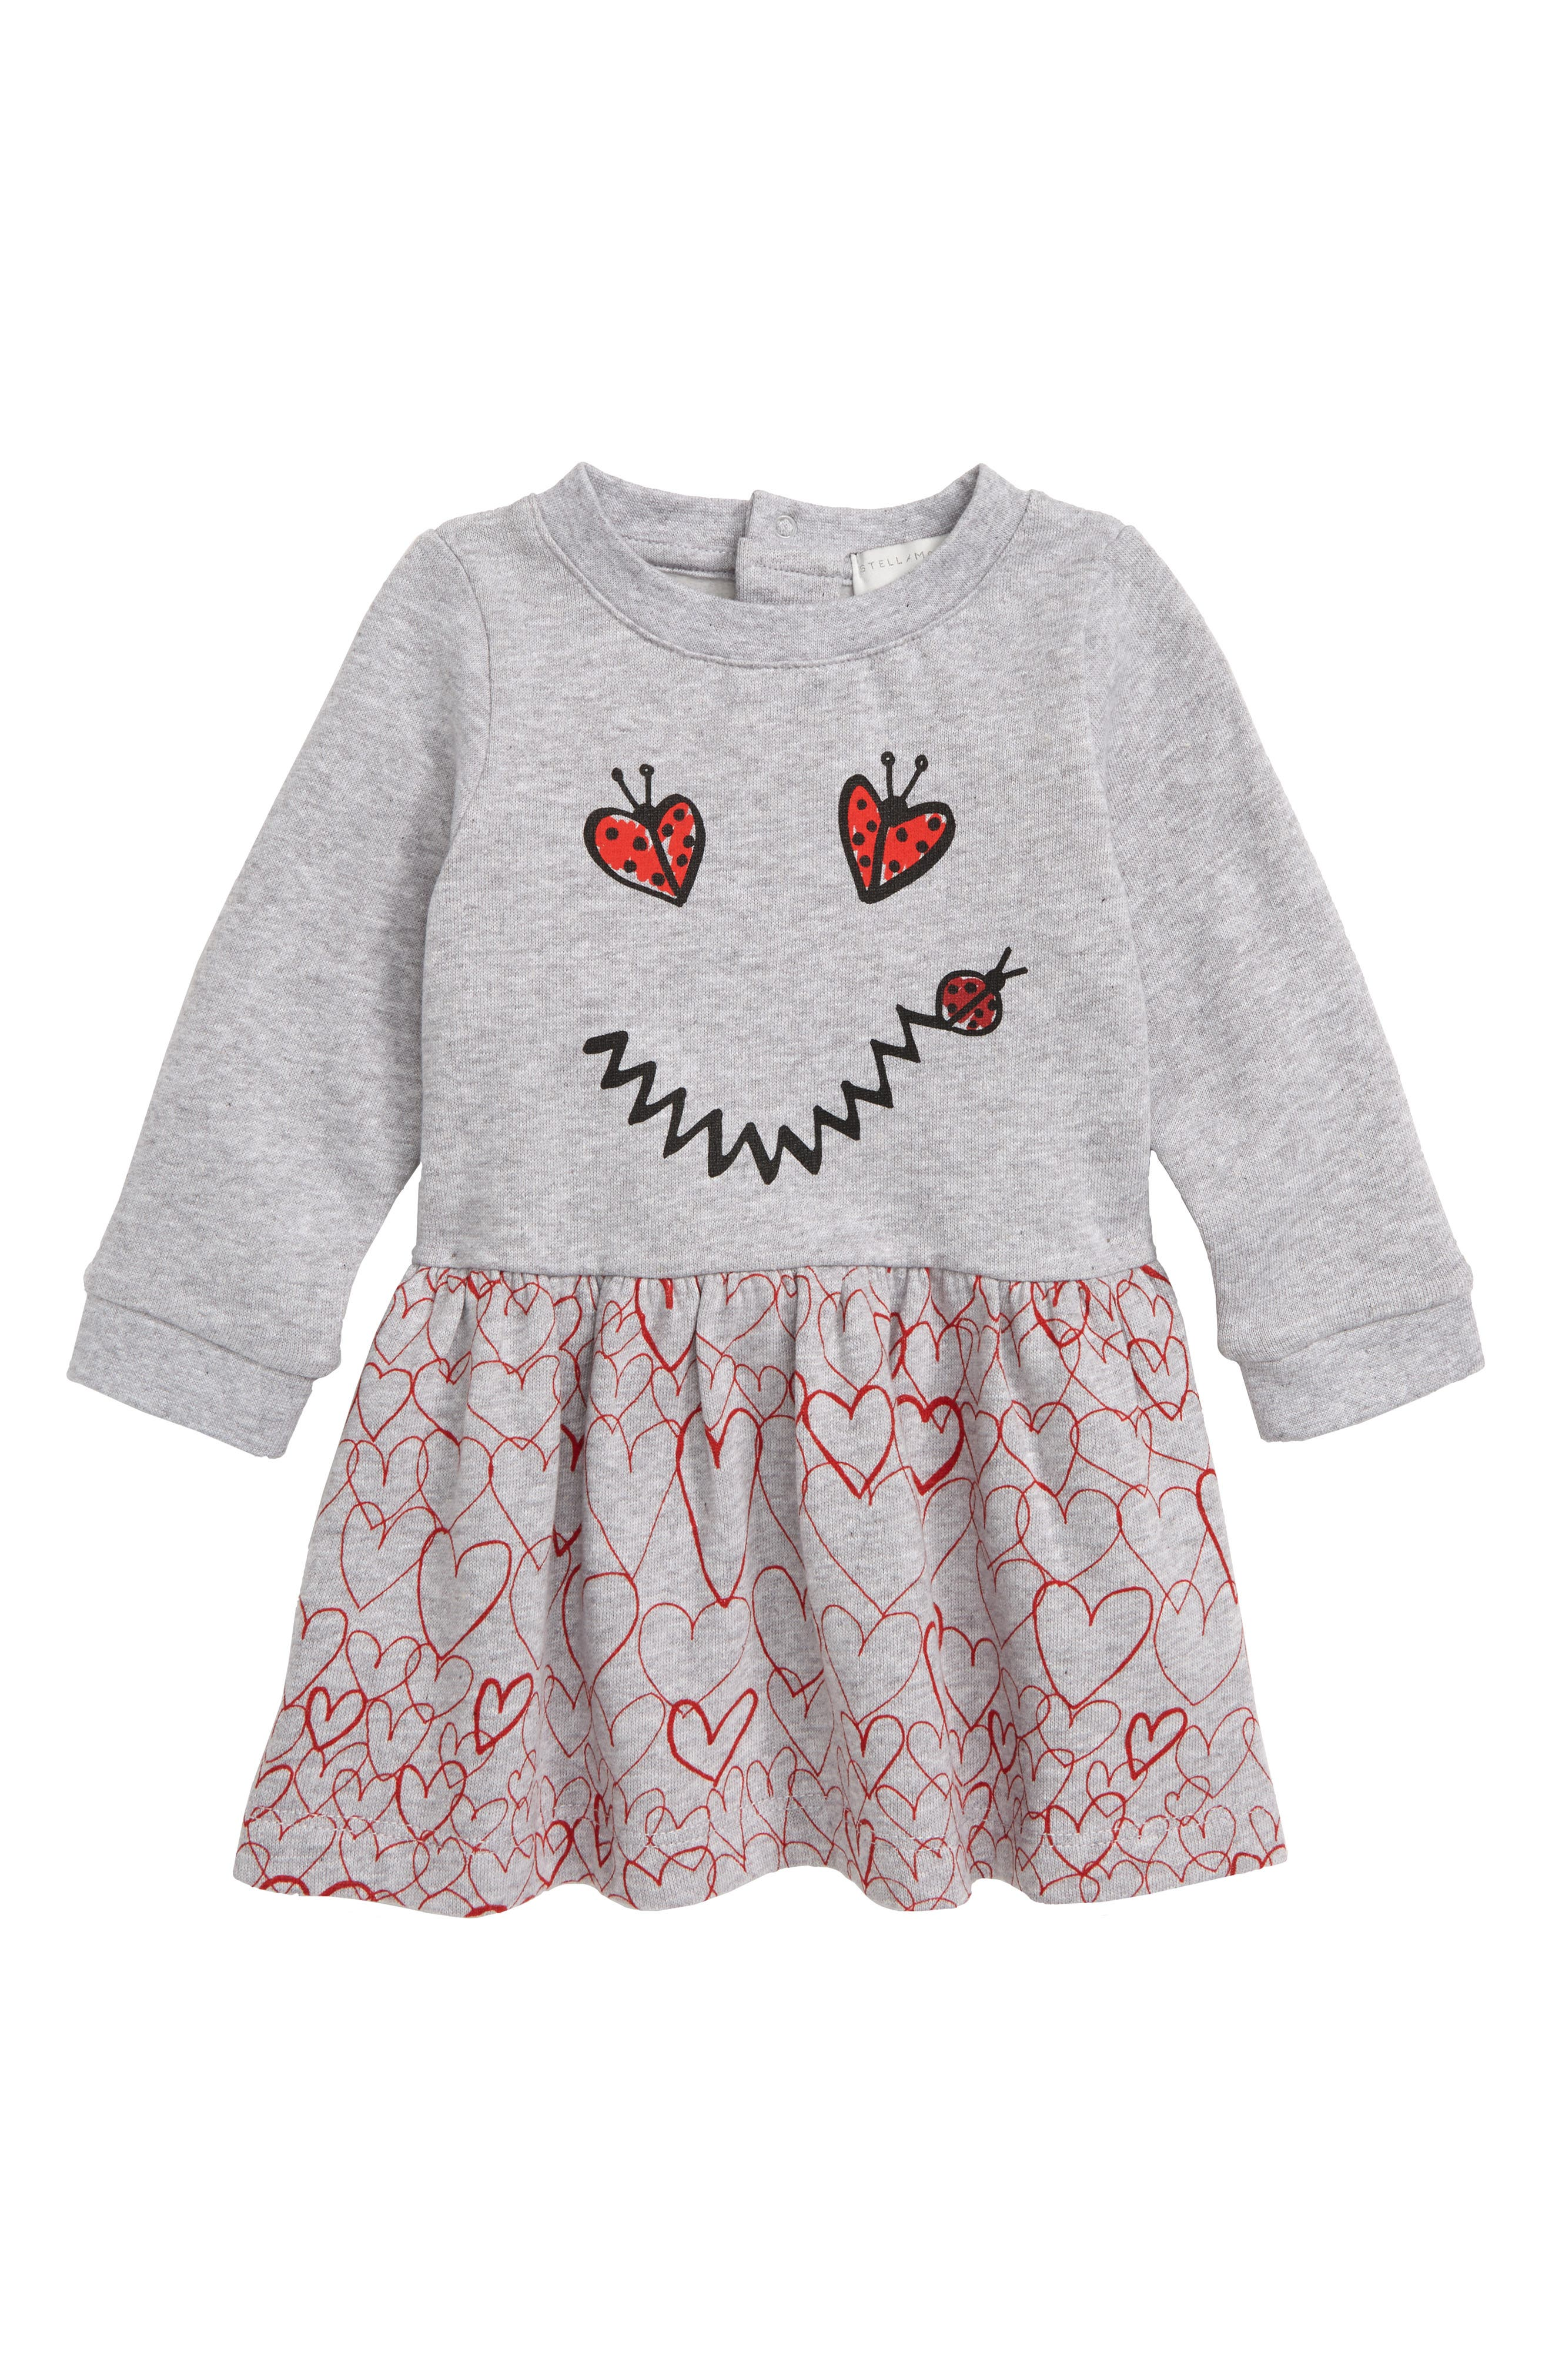 Smiley Heart Dress,                         Main,                         color, 020